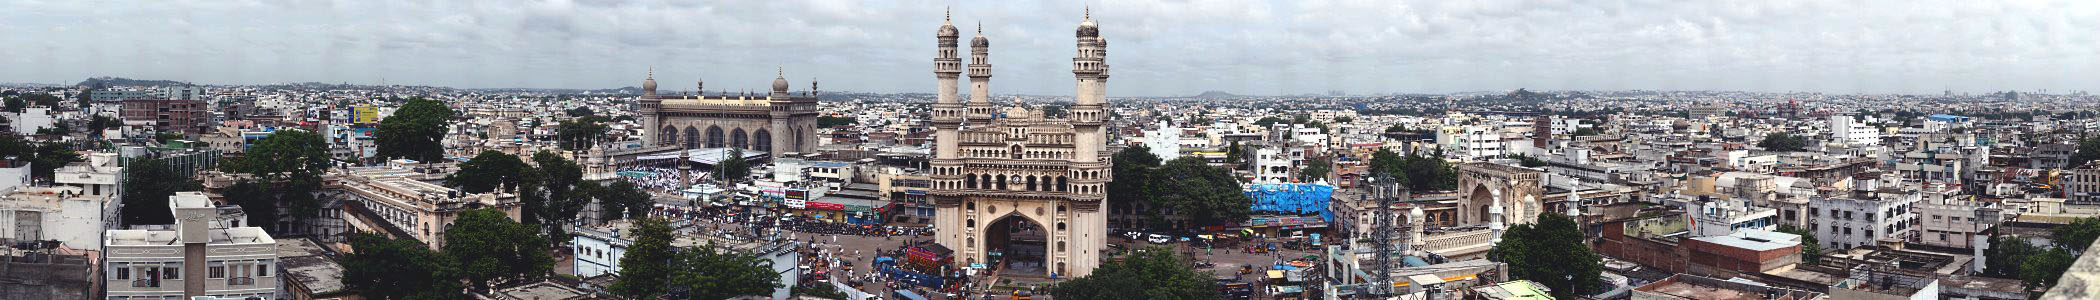 Hyderabad – Travel guide at Wikivoyage